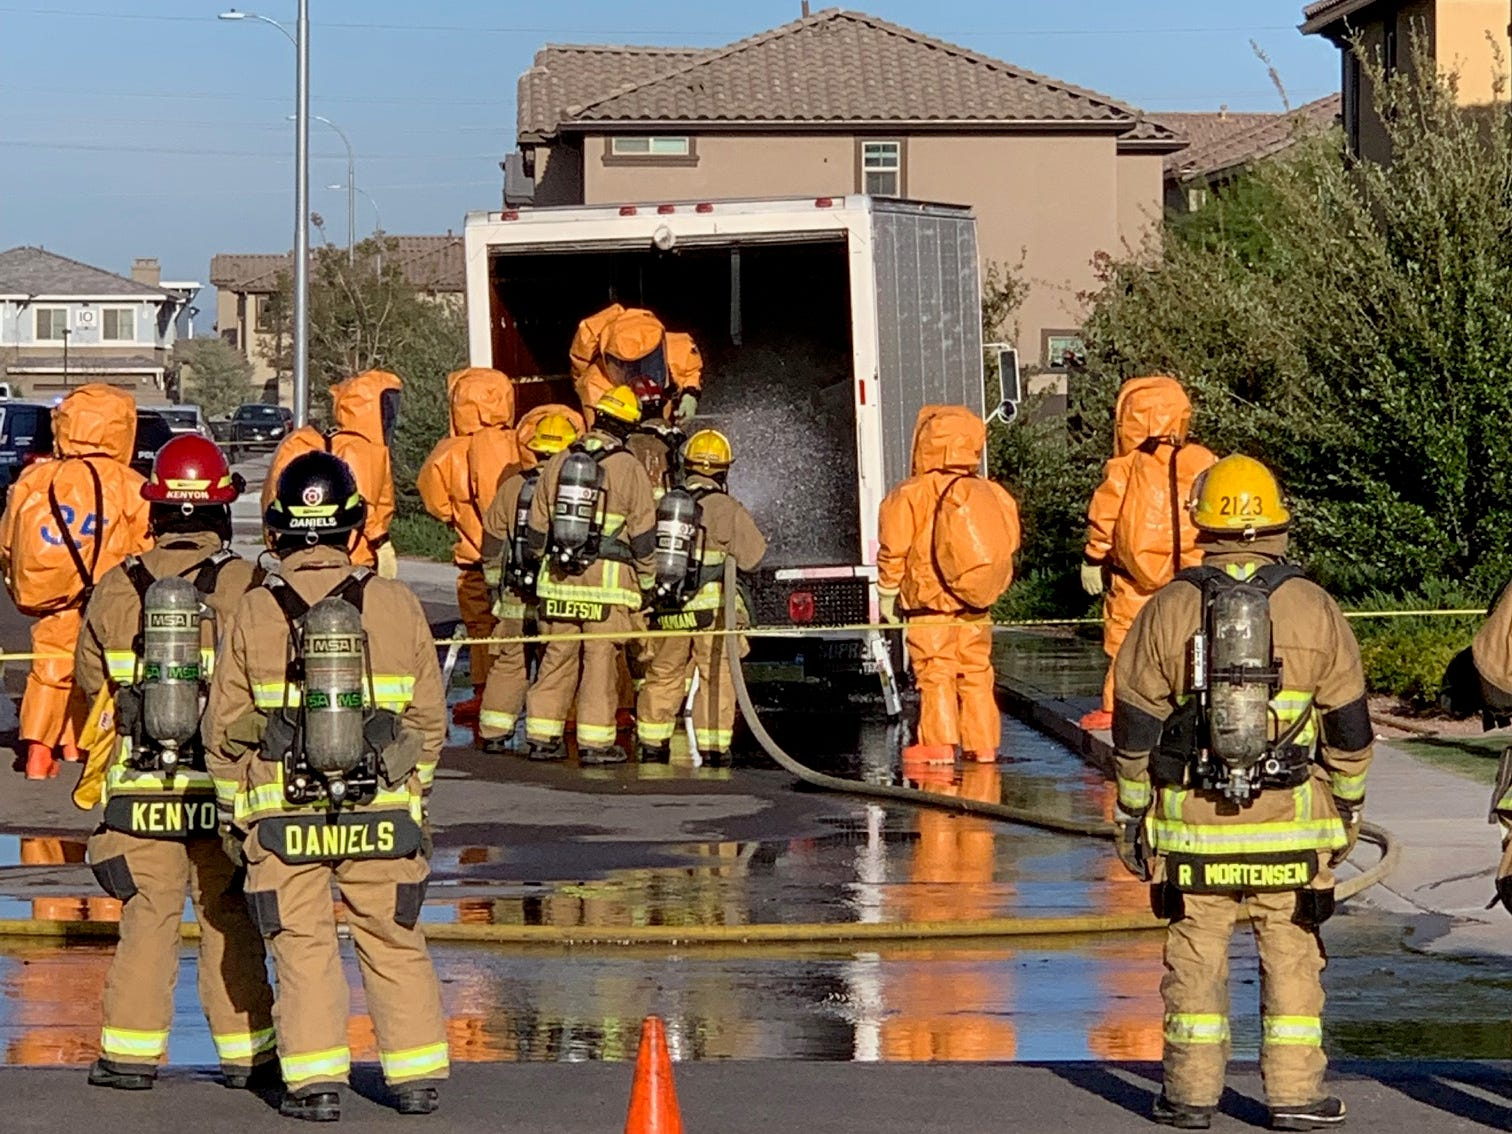 Gilbert police and fire personnel respond after a crash between a vehicle and a truck carrying several barrels of phosphorus caused a spill near Queen Creek Road and Arizona Avenue in Chandler on March 29, 2019. Several houses in the area were evacuated.